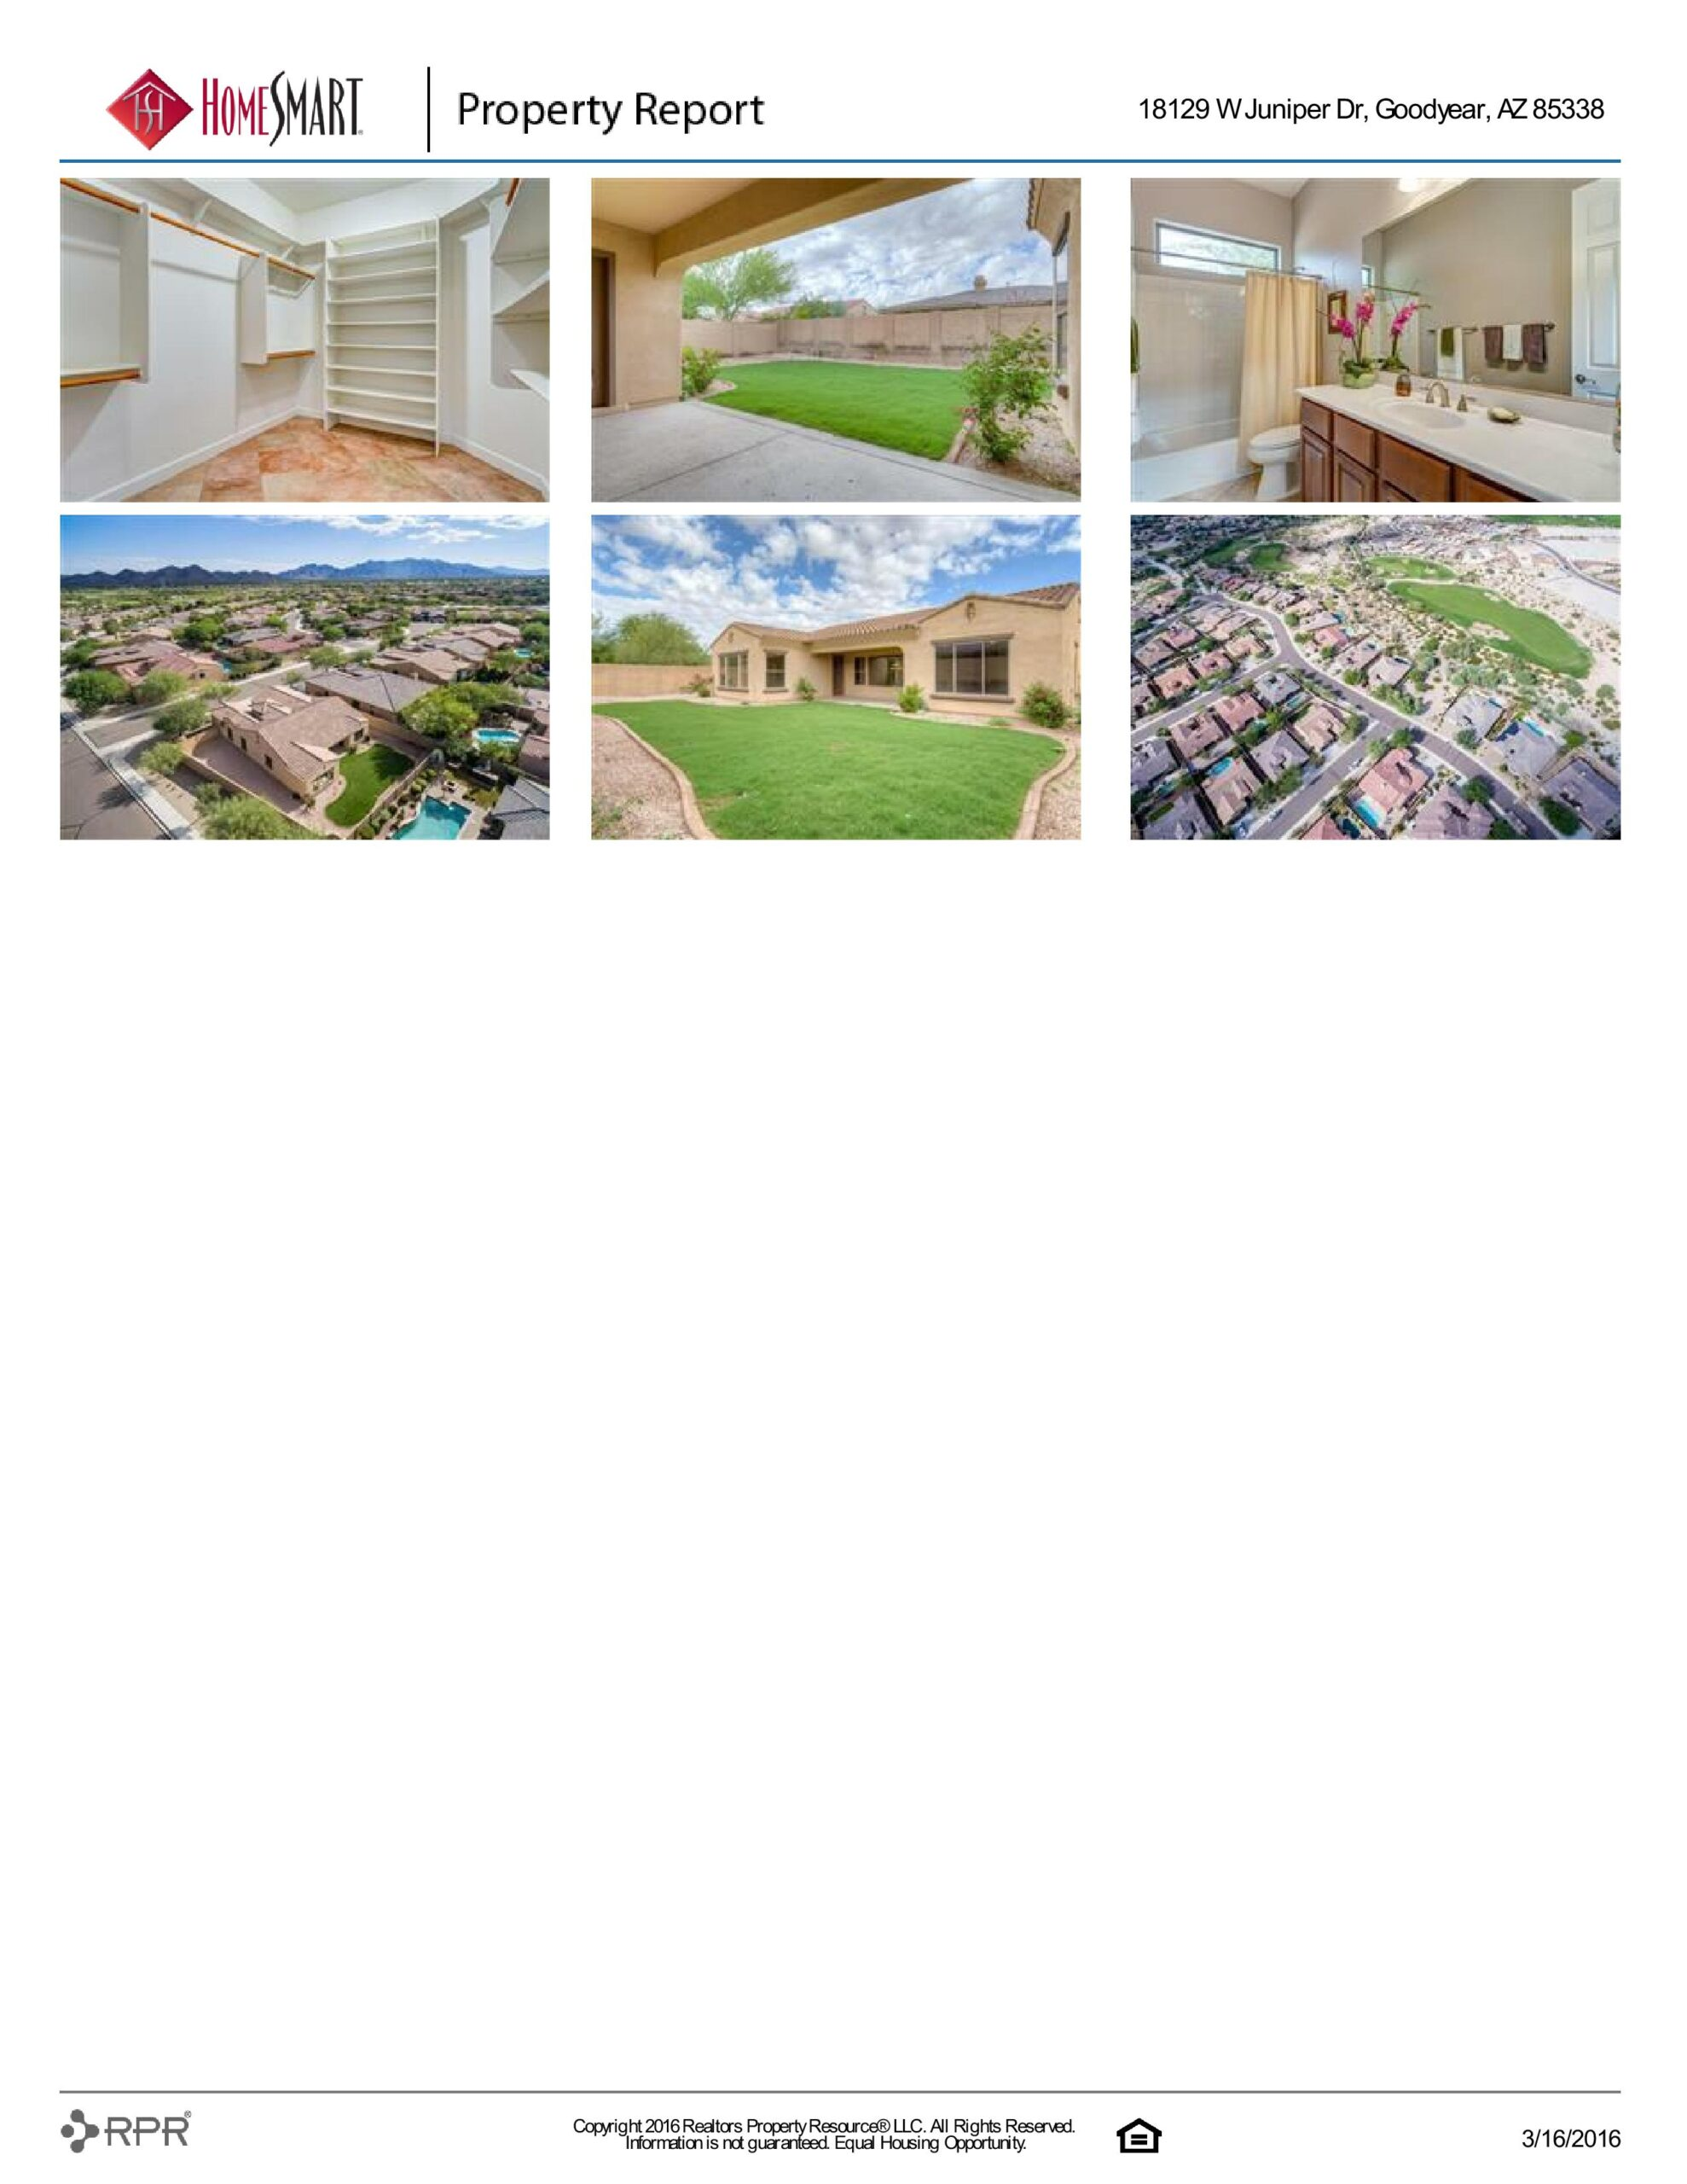 18129 W JUNIPER DR PROPERTY REPORT-page-007